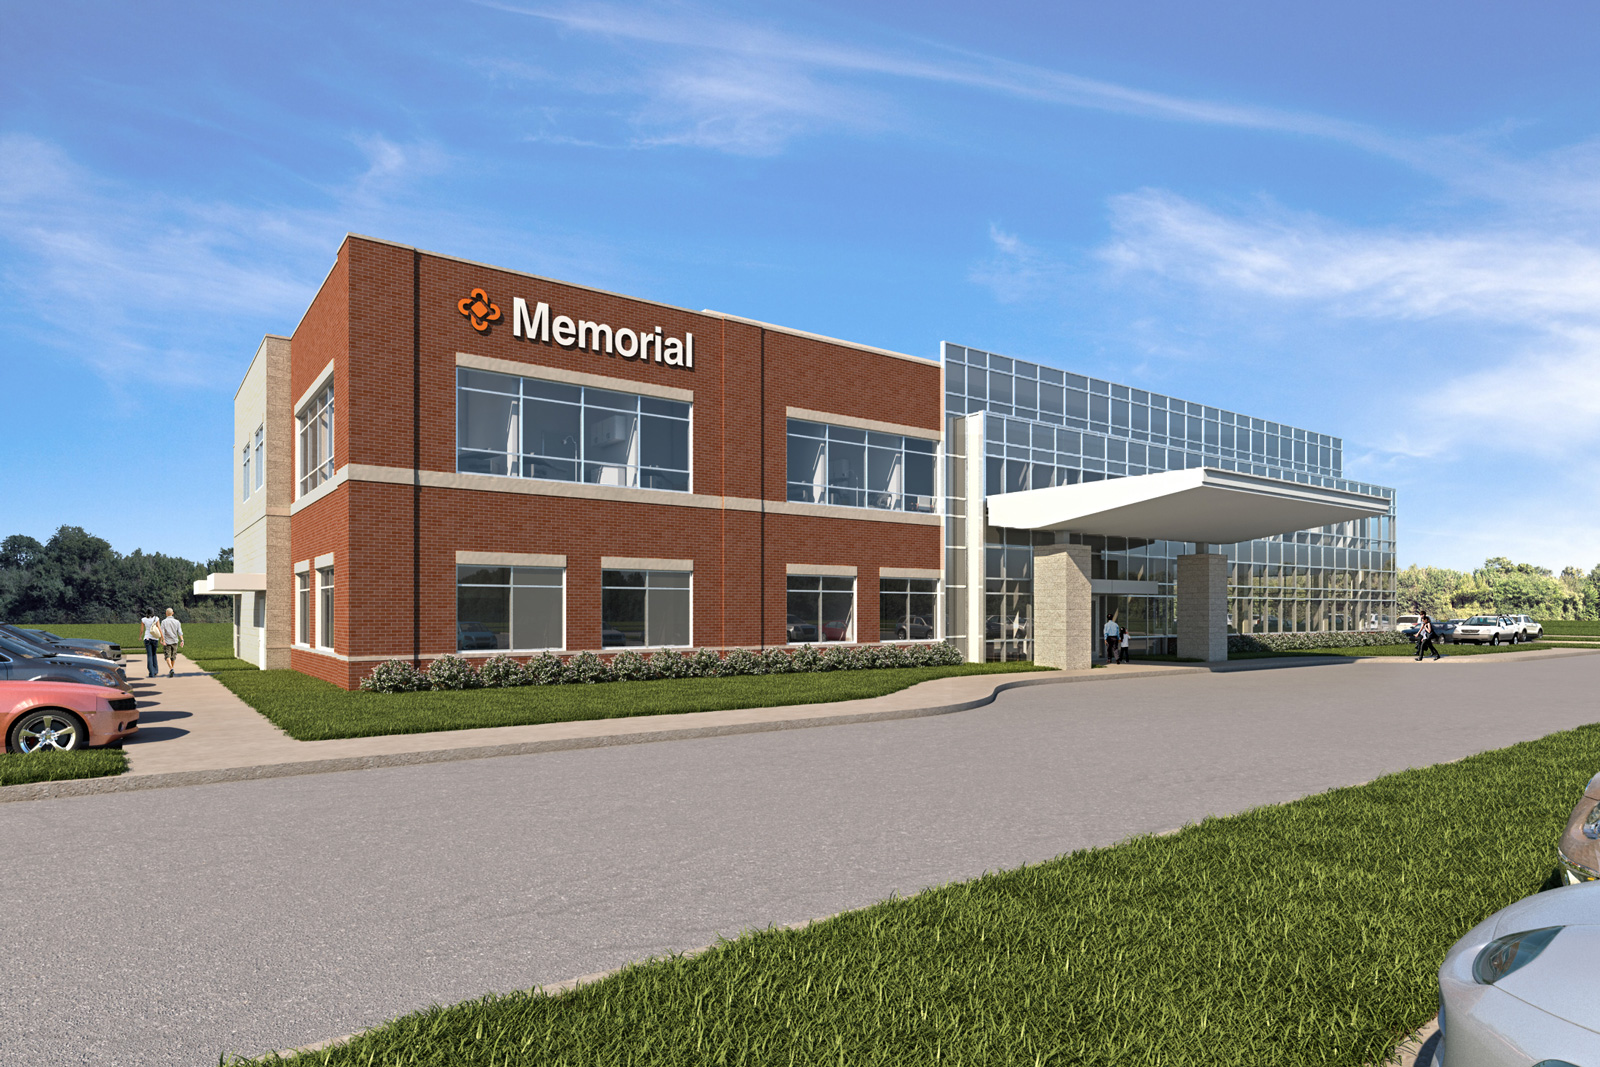 Hplex partners with Memorial Health on new $9M outpatient